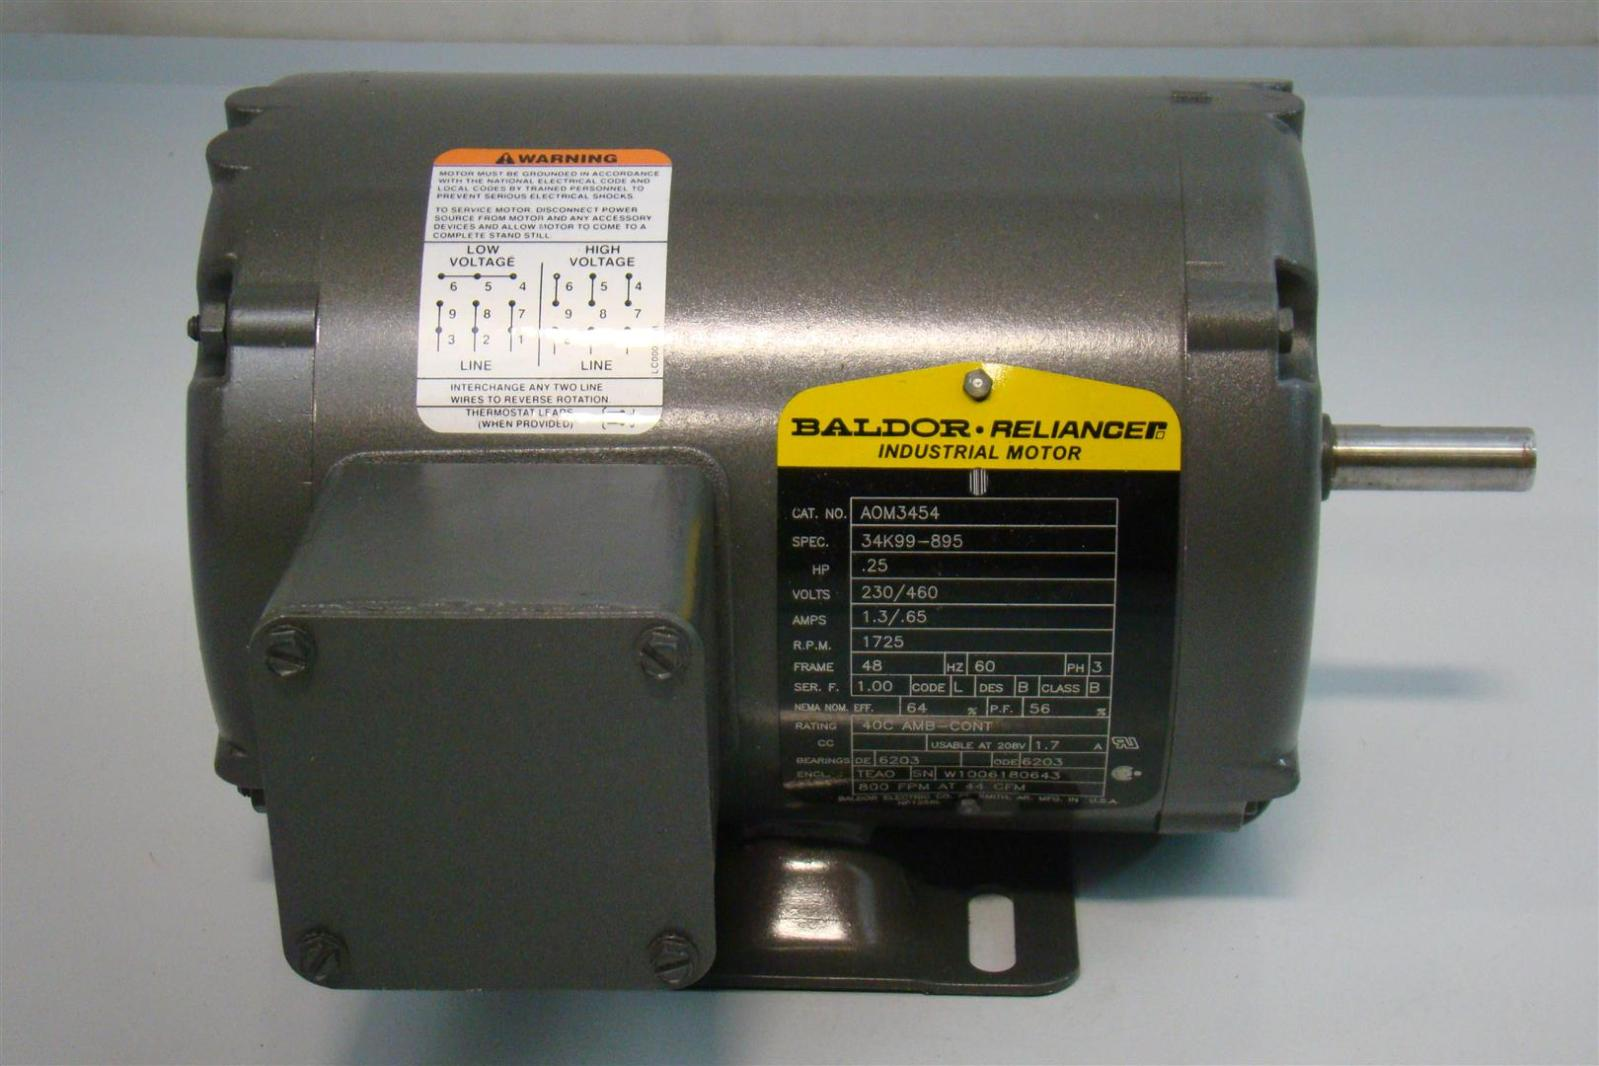 afe126 baldor reliance industrial motor 25hp 13 65amps 1725rpm 60hz aom3454 compressor motor wiring diagram dolgular com economaster em 3728 wiring diagram at crackthecode.co